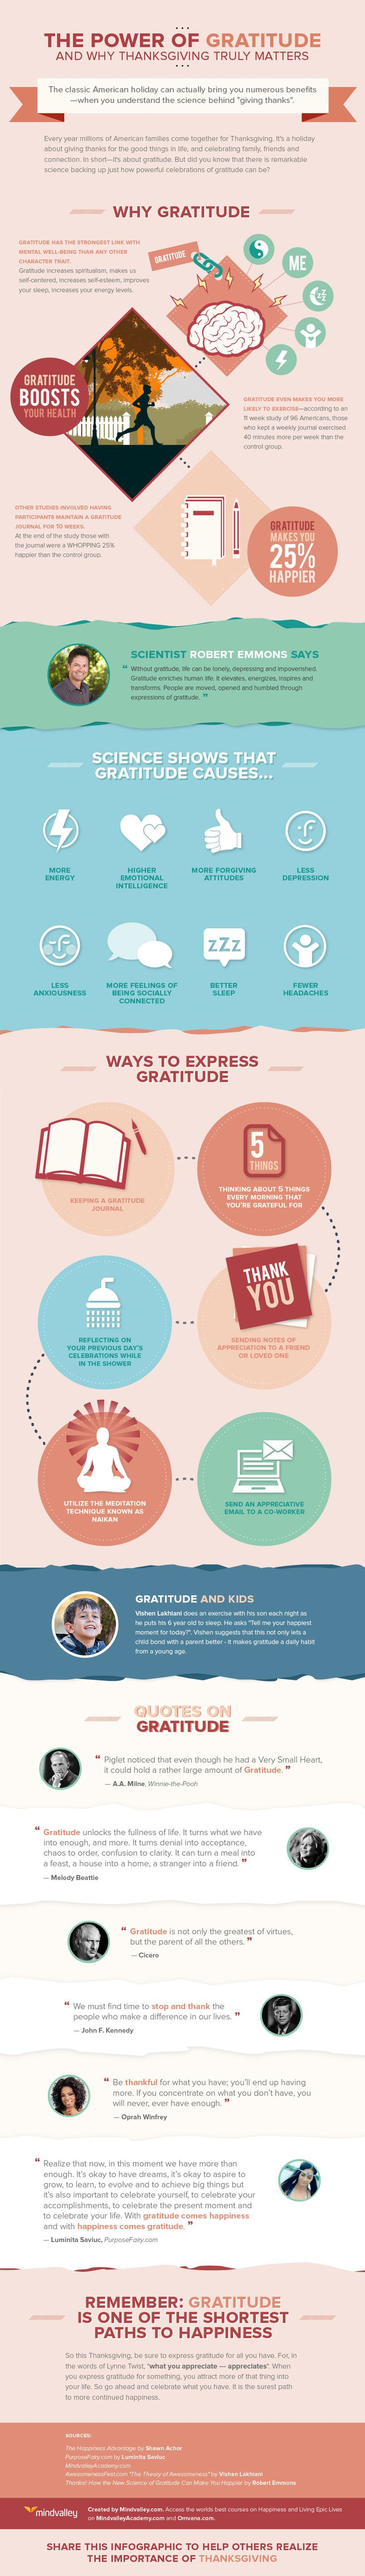 The Power of Gratitude #infographic                              …                                                                                                                                                                                 More